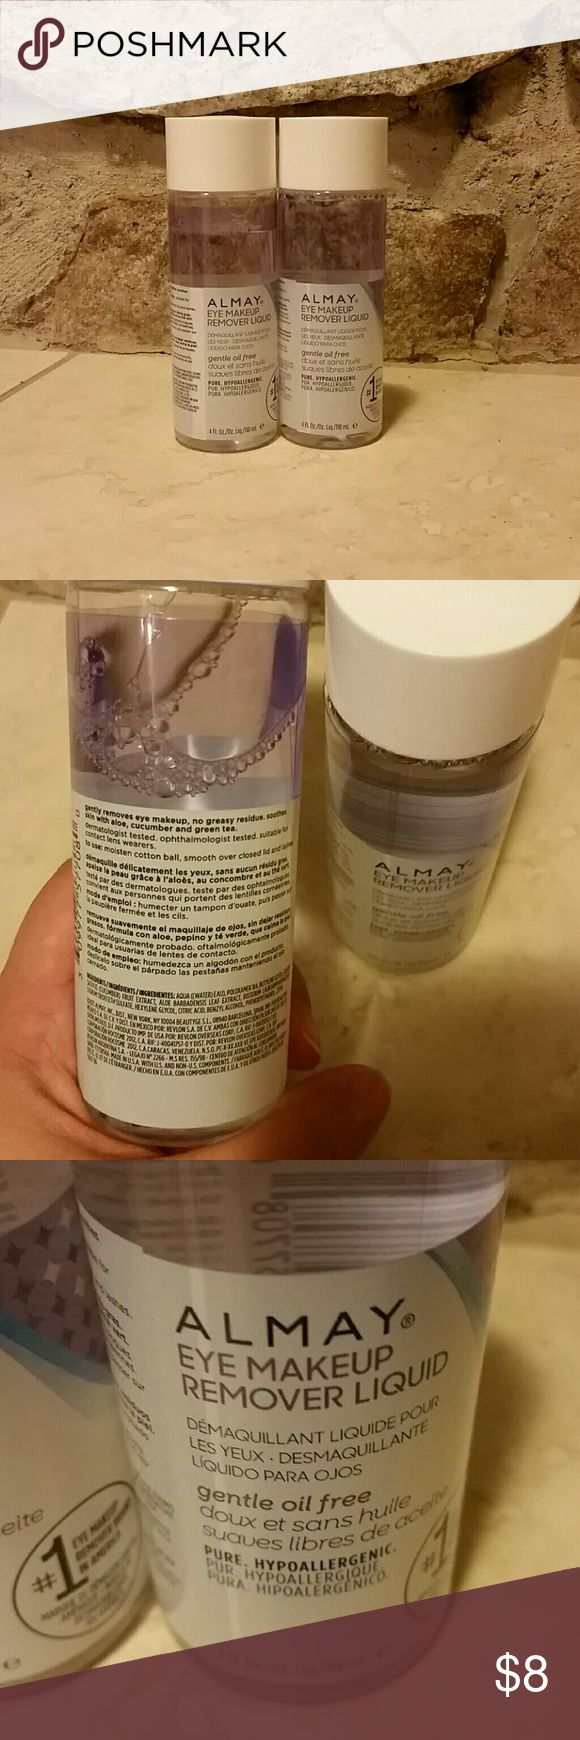 Almay makeup remover 2 Almay makeup removers. Brand new still sealed. Both are 4 fl oz. Makeup